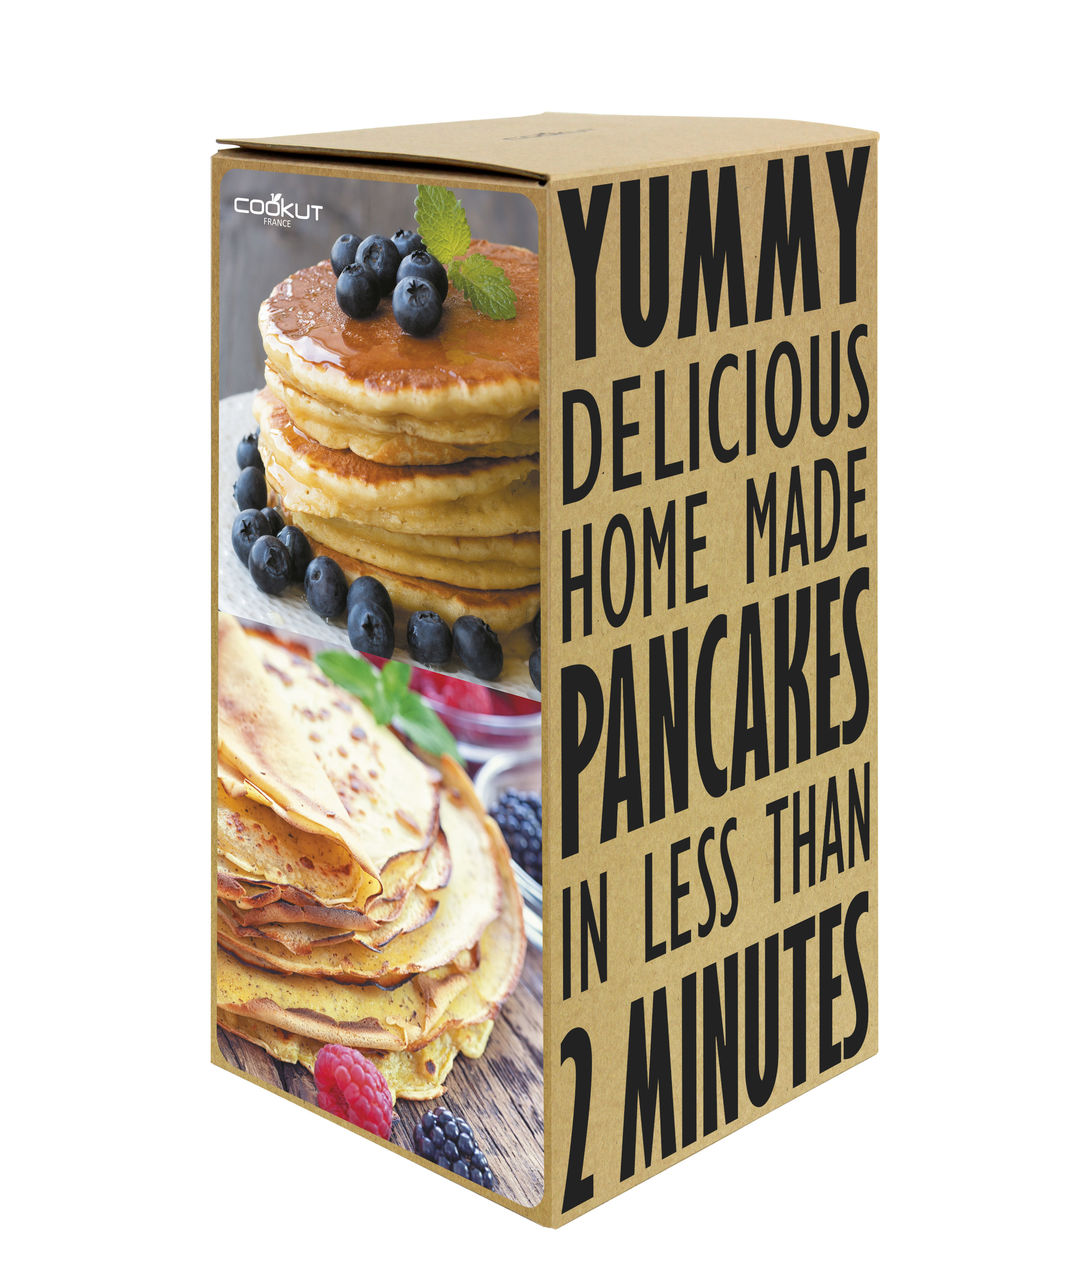 Pancakes & Crepes Shaker 'Miam' by COOKUT | The Design Gift Shop